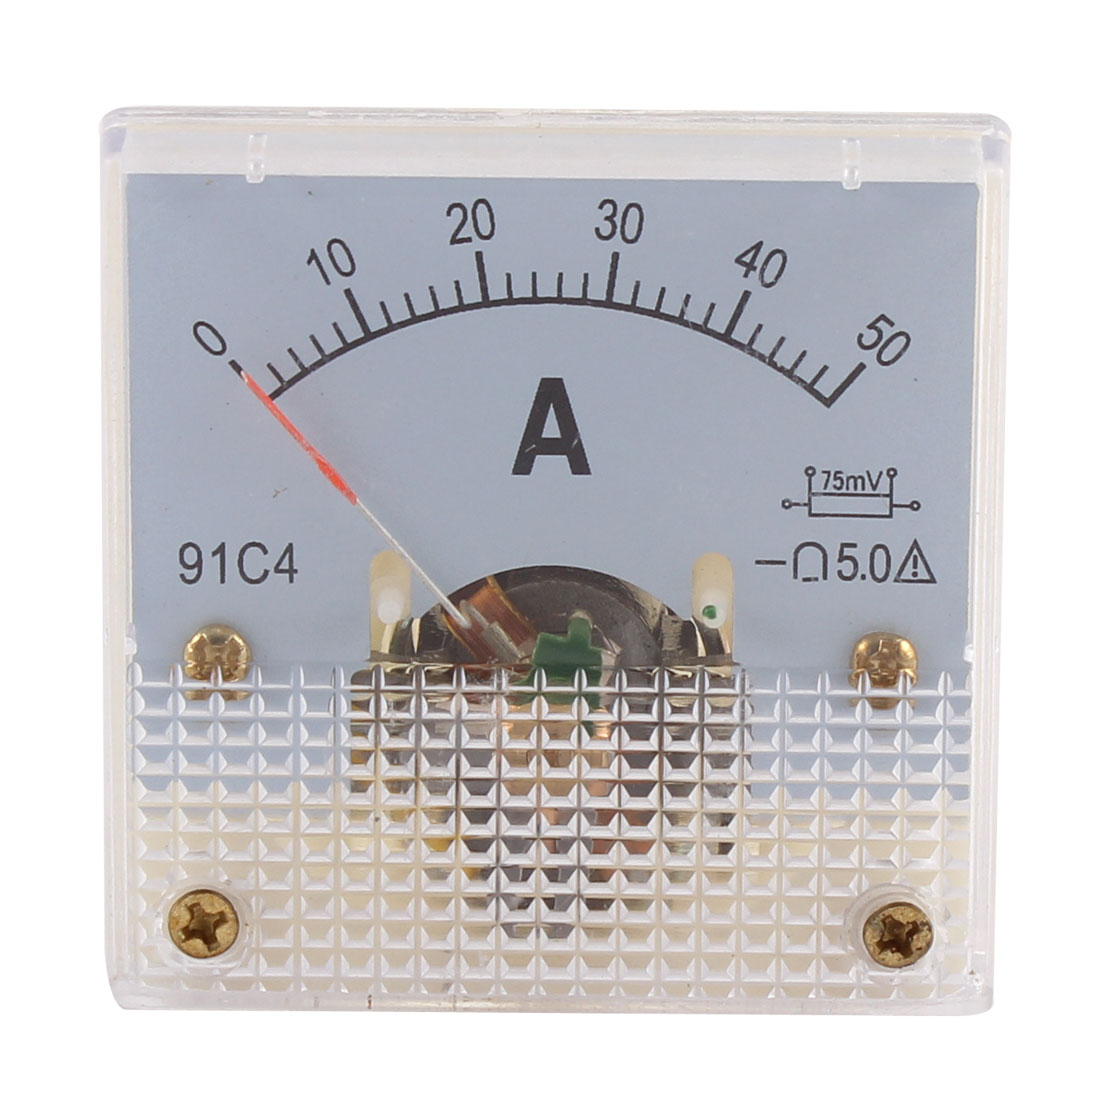 91C4 DC 0-50A Rectangle Mini Analog Panel Ammeter Gauge Amperemeter Class 5